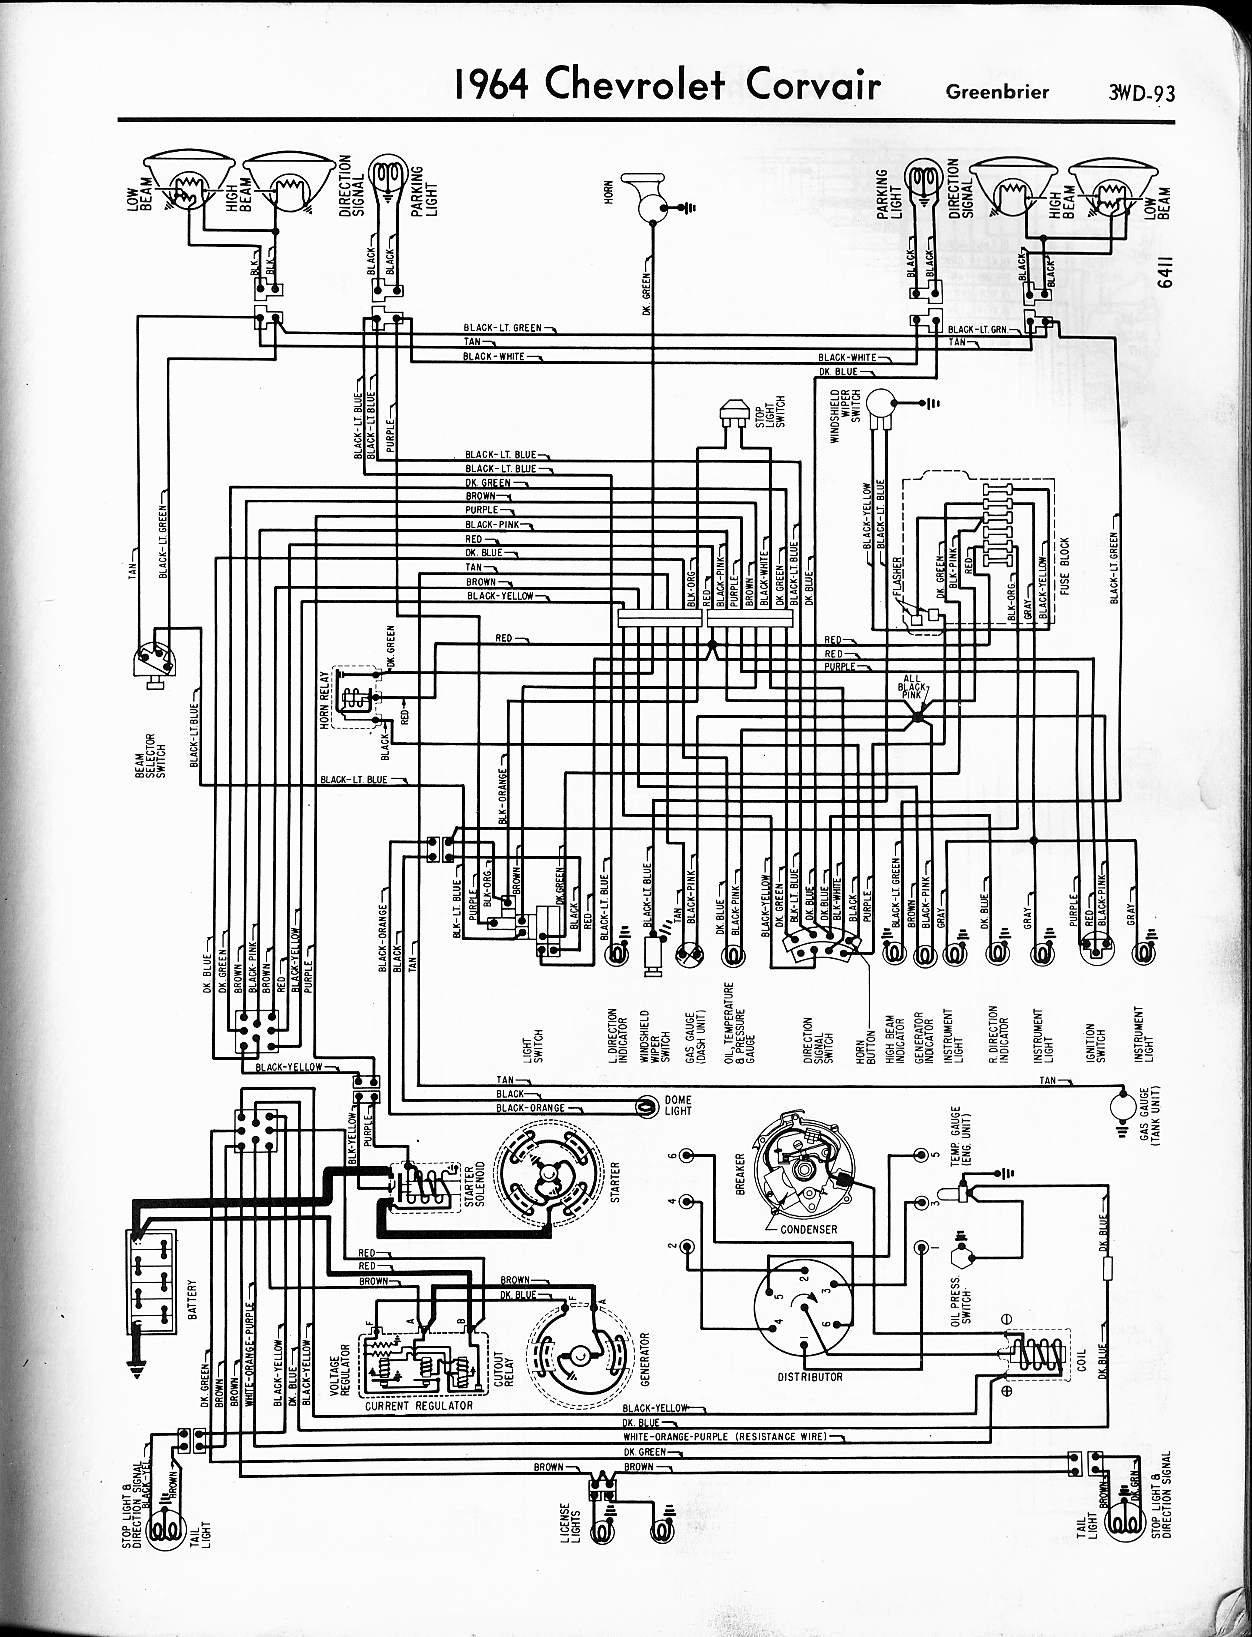 opel kadett e wiring diagram stateofindiana co opel kadett 200is wiring diagram opel kadett gsi wiring diagram